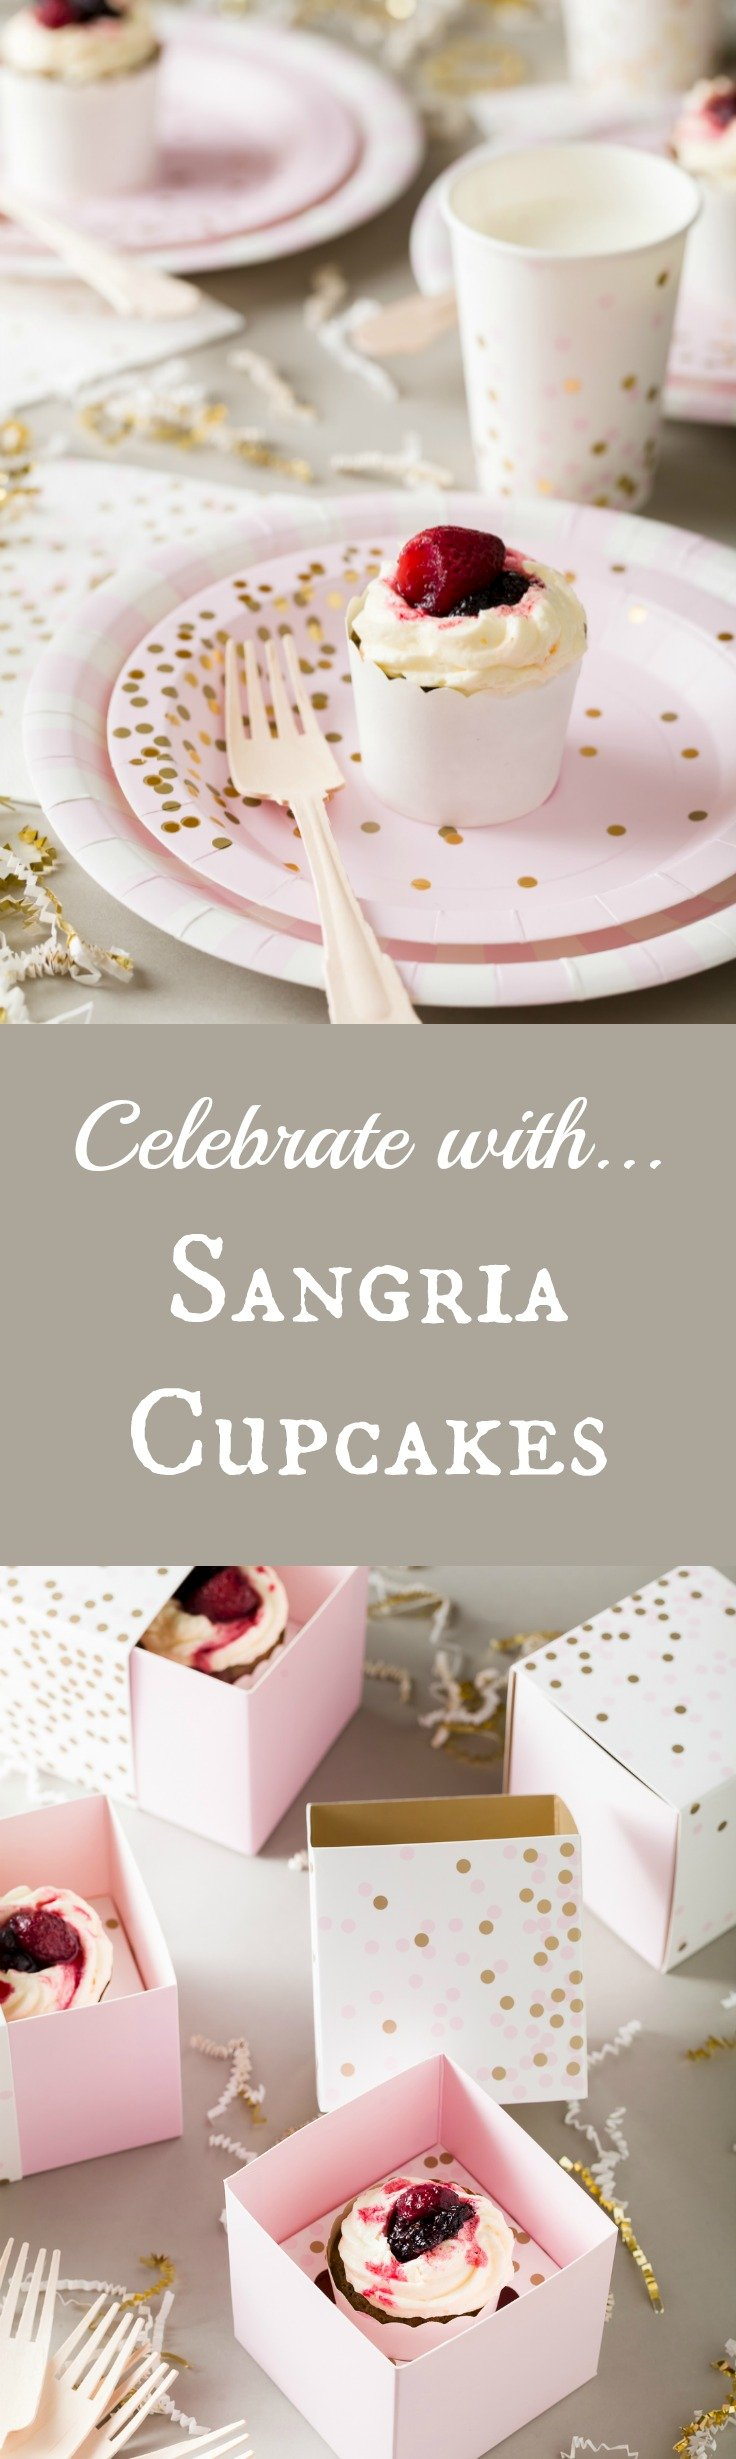 Celebrate with Sangria Cupcakes